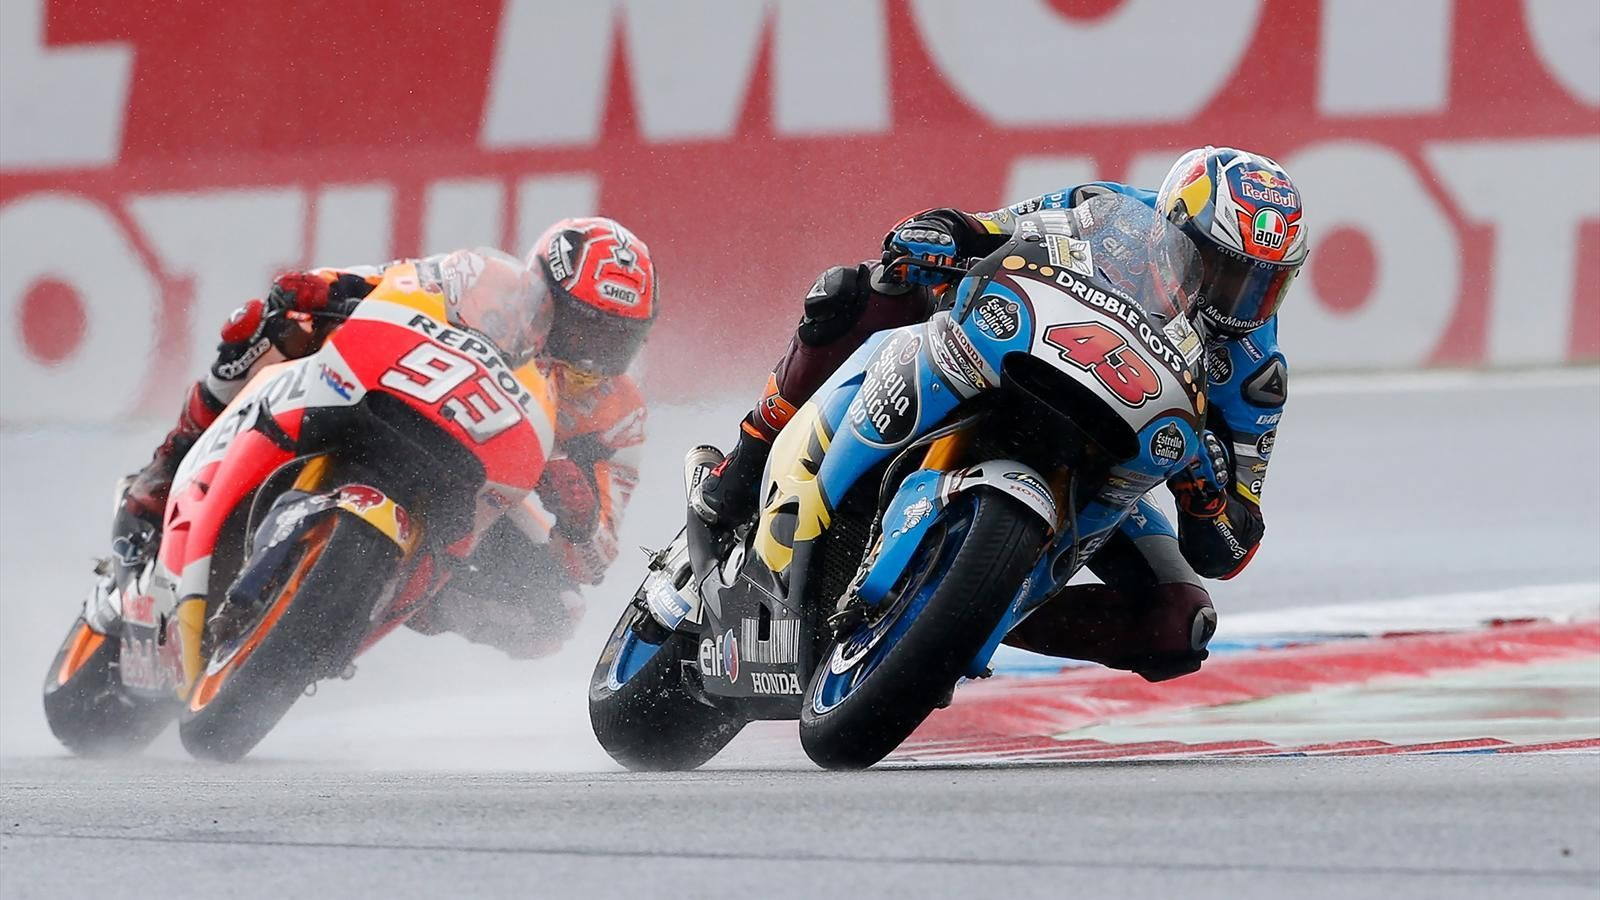 Jack Miller ruled out of Austrian GP after crash (With